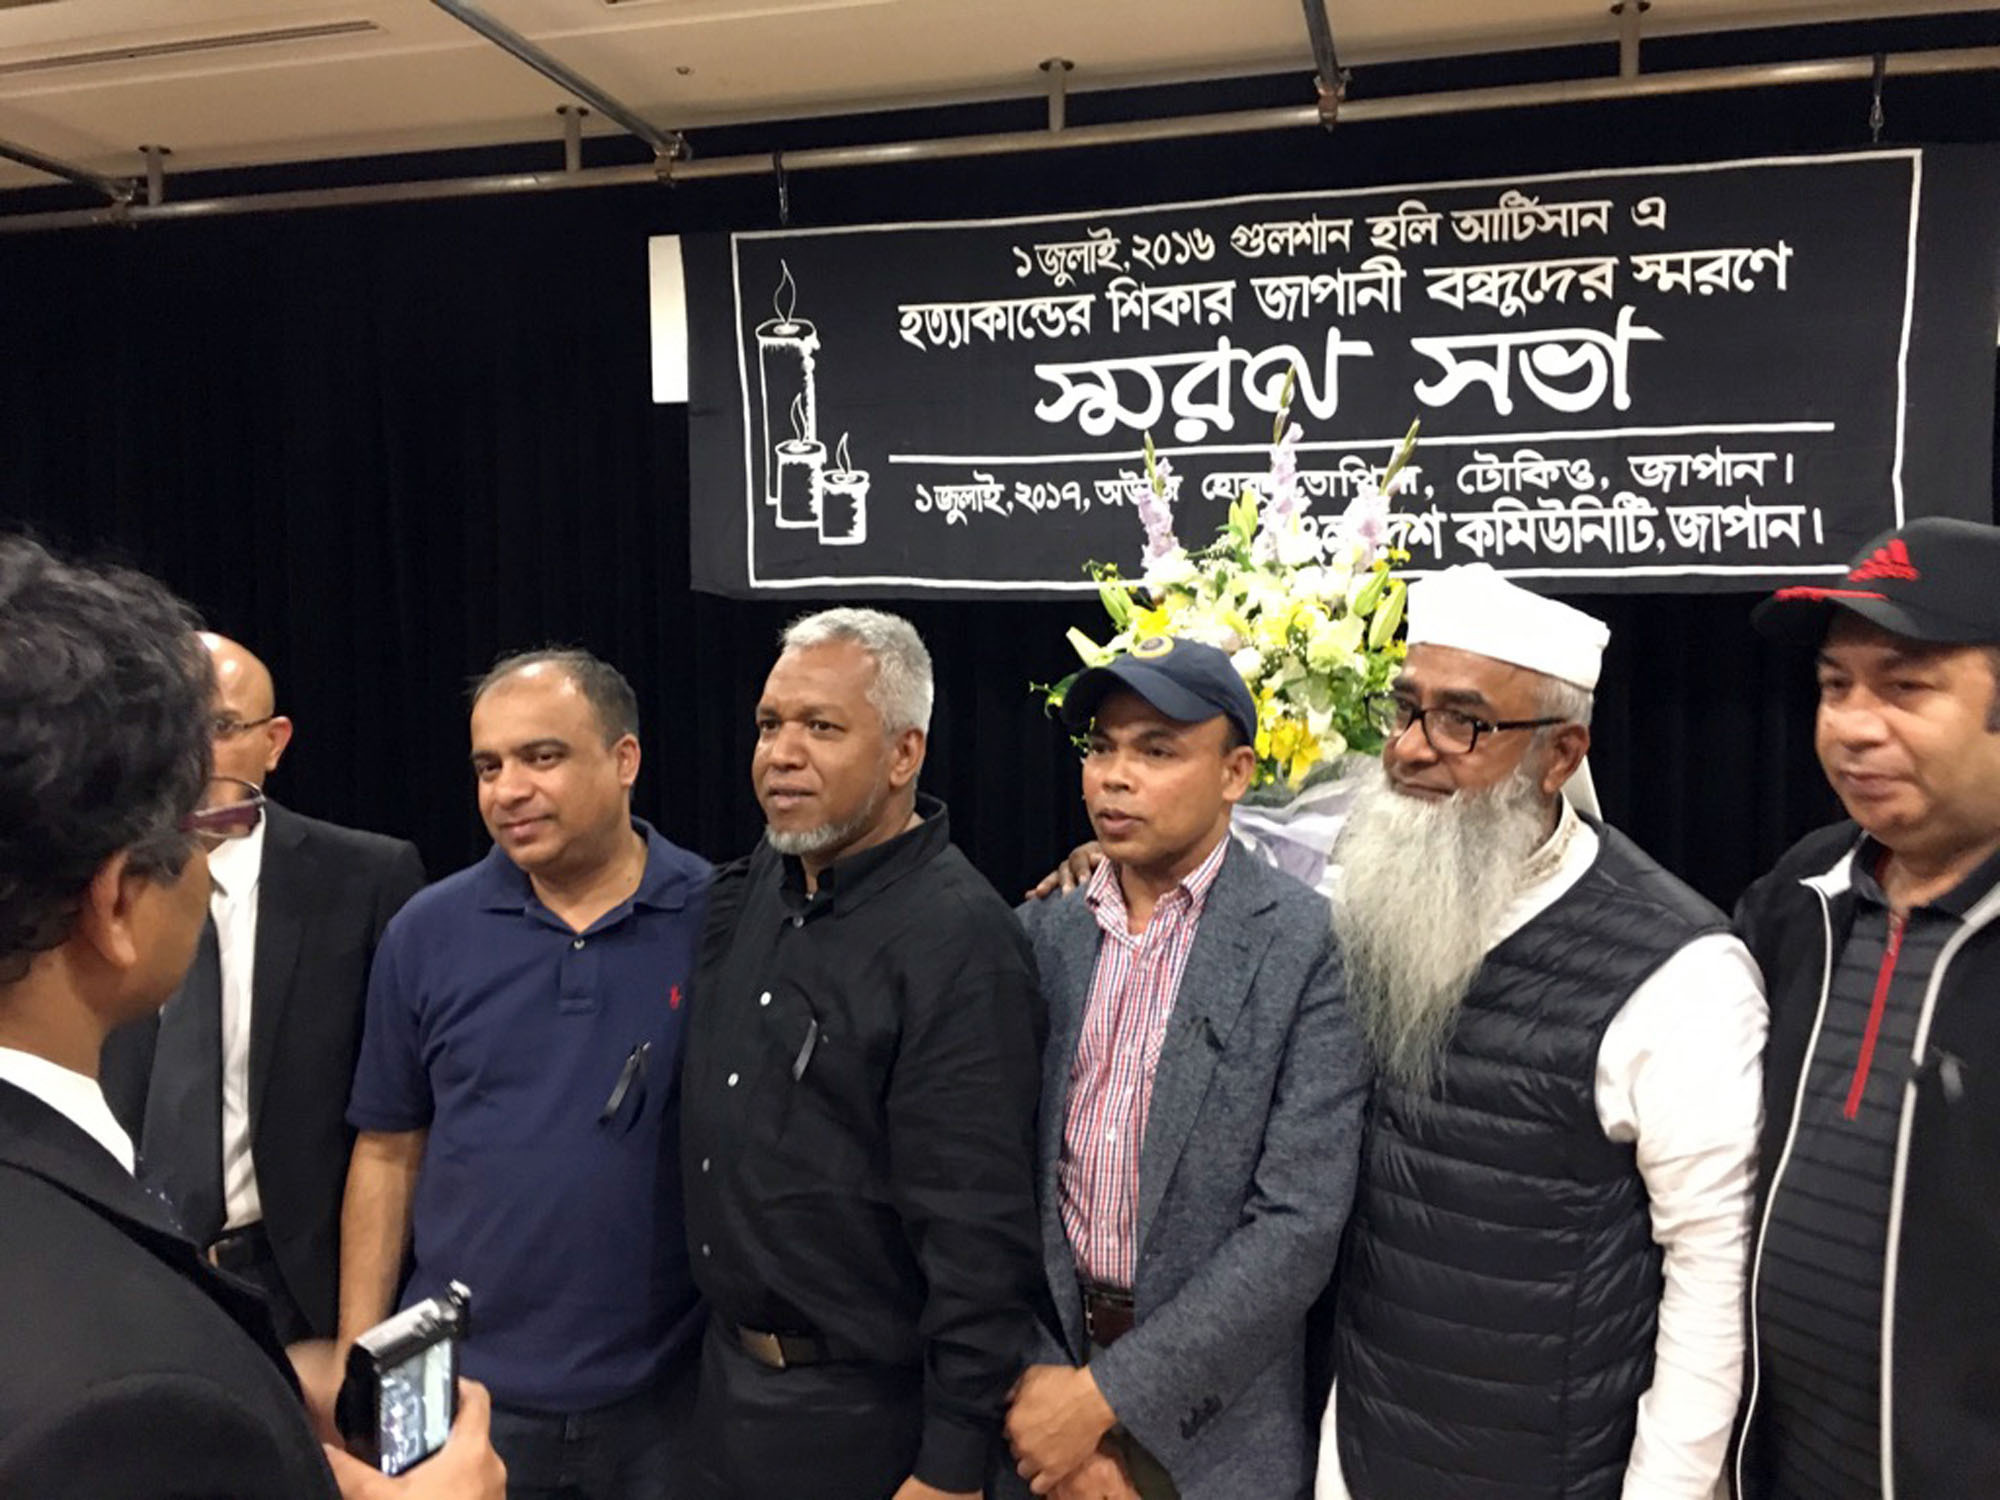 Members of the Bangladeshi community in Japan gather at Oji, Tokyo, on July 1 to mark the first anniversary of the Dhaka terrorist attack that killed 28 people, including seven Japanese working in projects managed by the Japan International Cooperation Agency. |  RAHMAN MONI